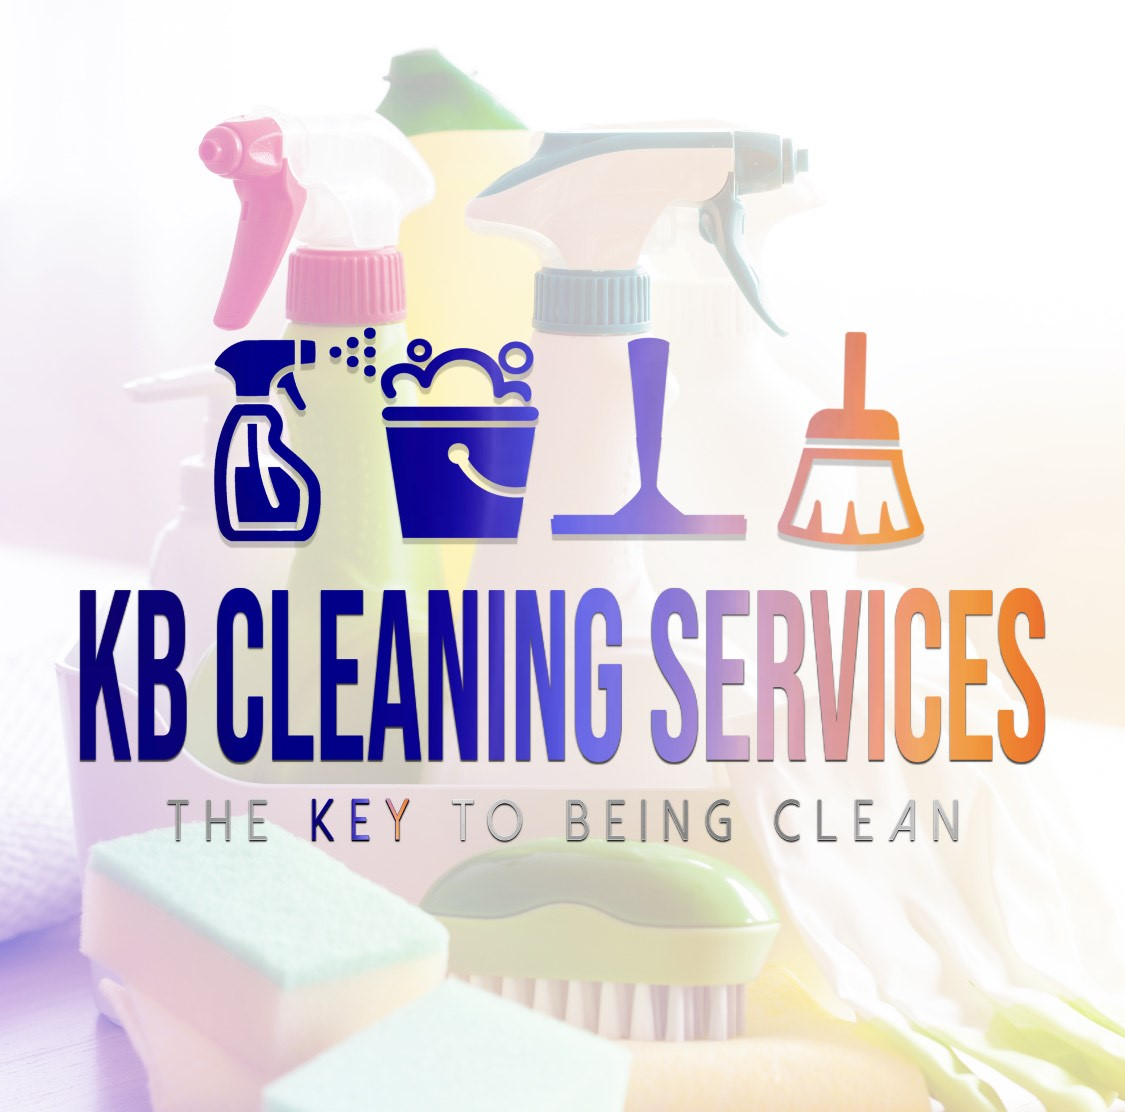 Kb cleaning services white logo products